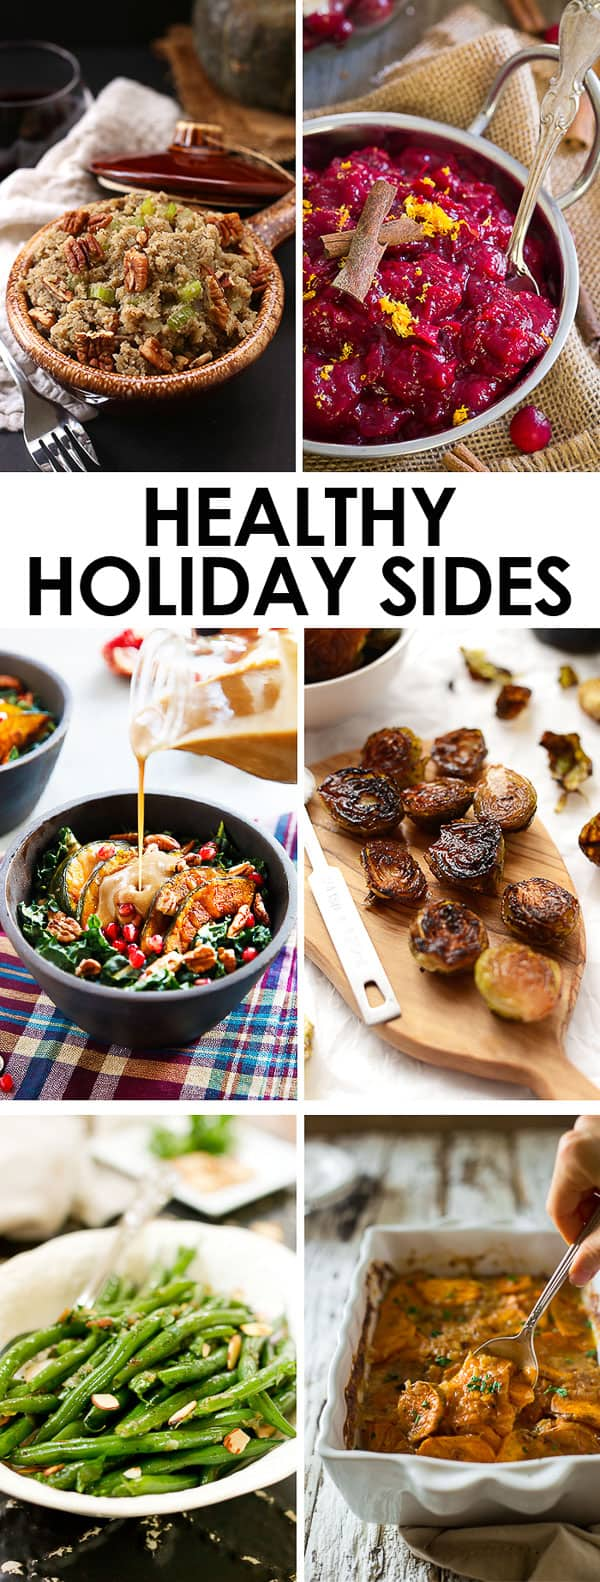 6 Healthy Holiday Sides